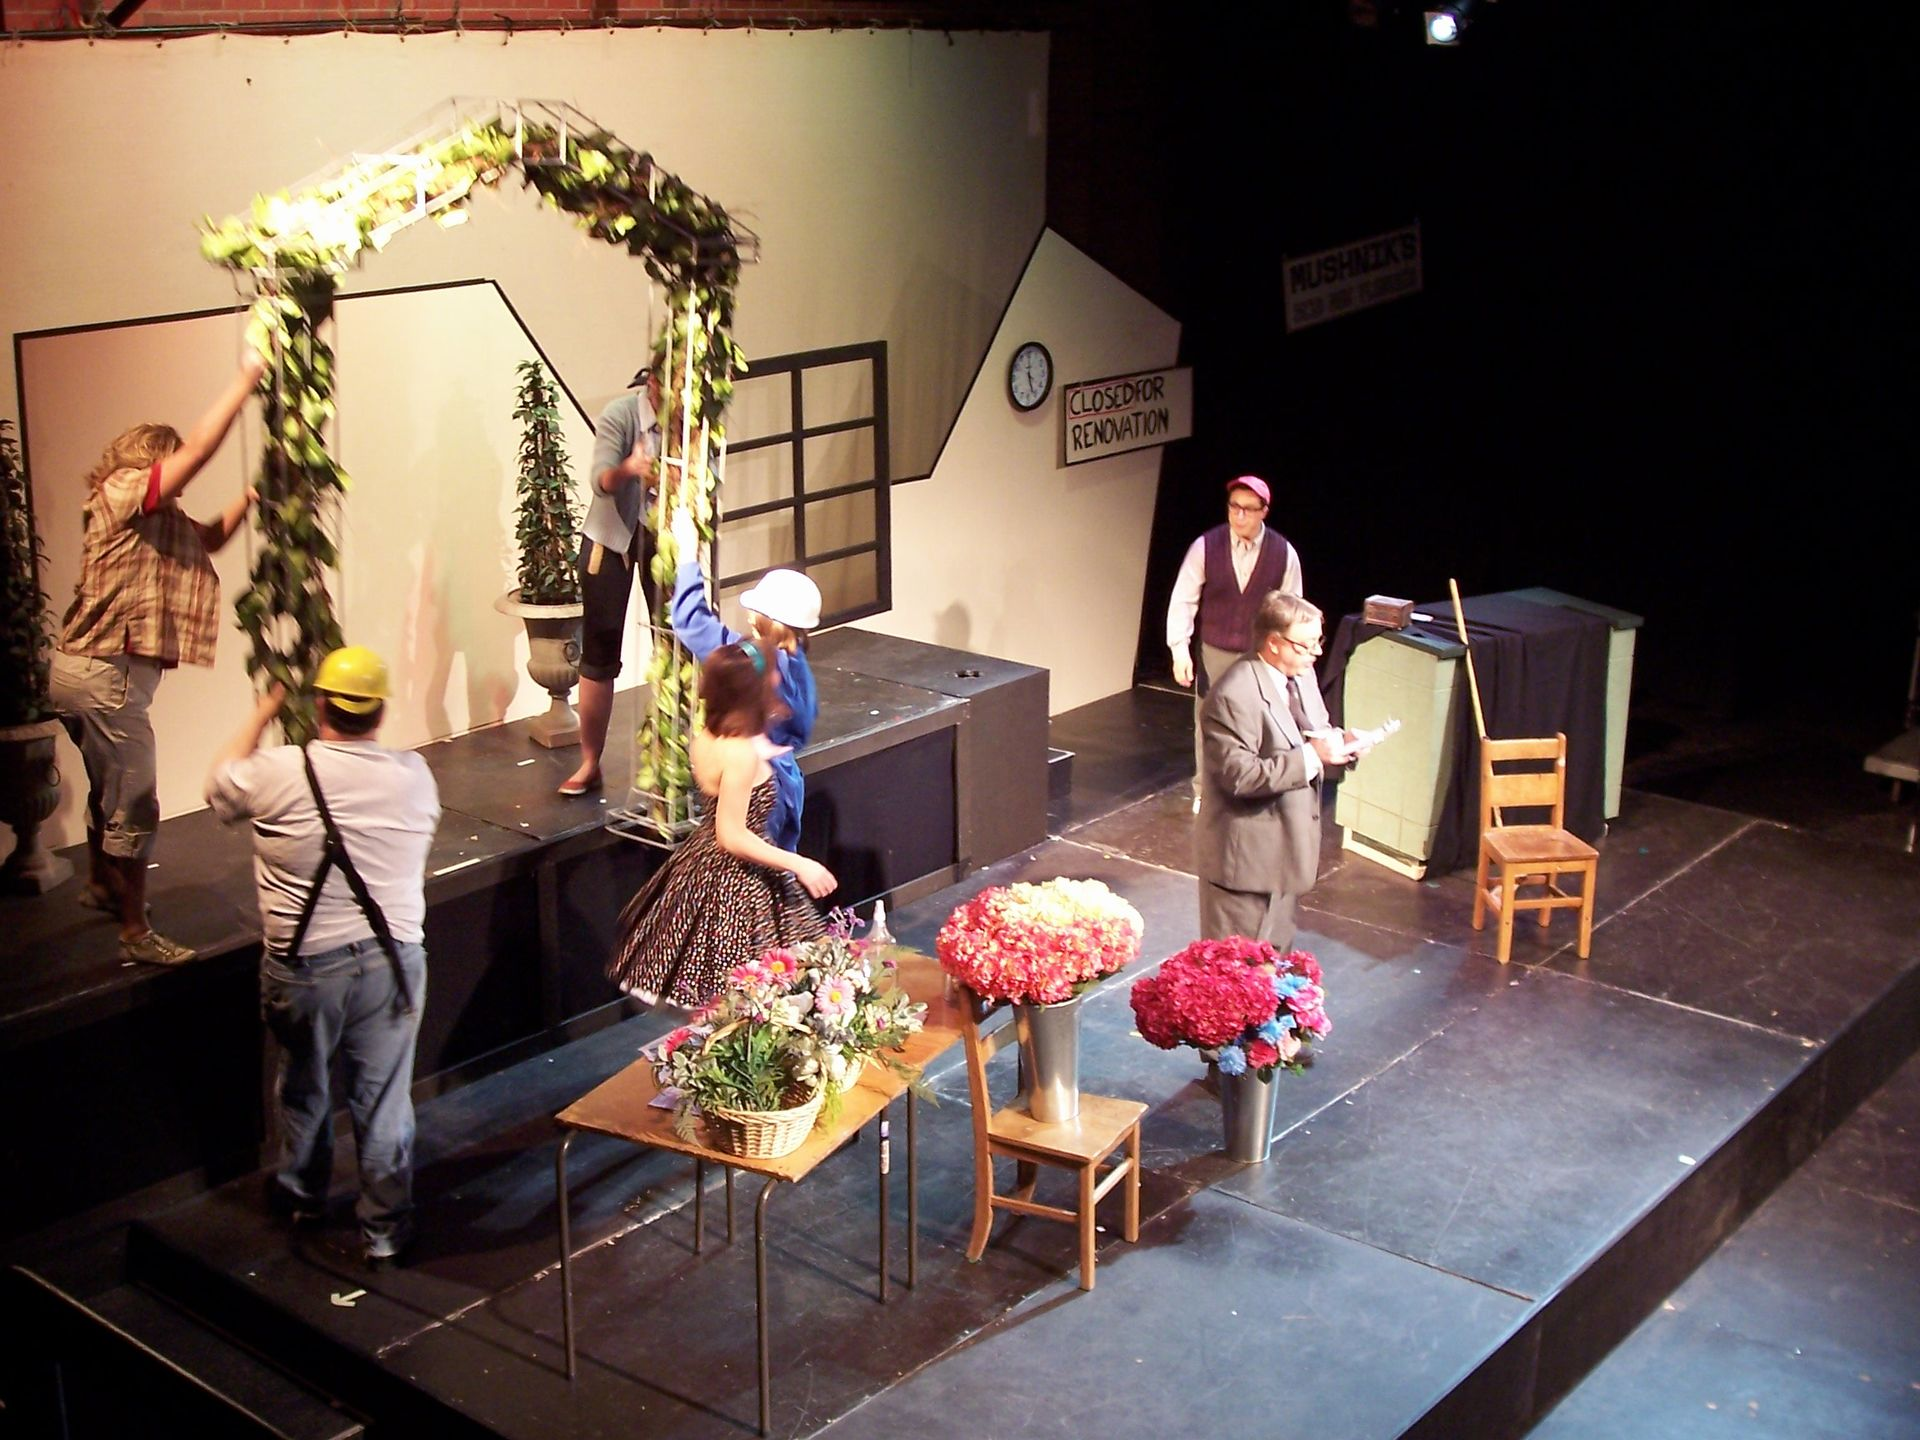 Heather Oystryk, Tim Elliott, Christine Horne, Carl Bishop and Levon Yon in Little Shop of Horrors